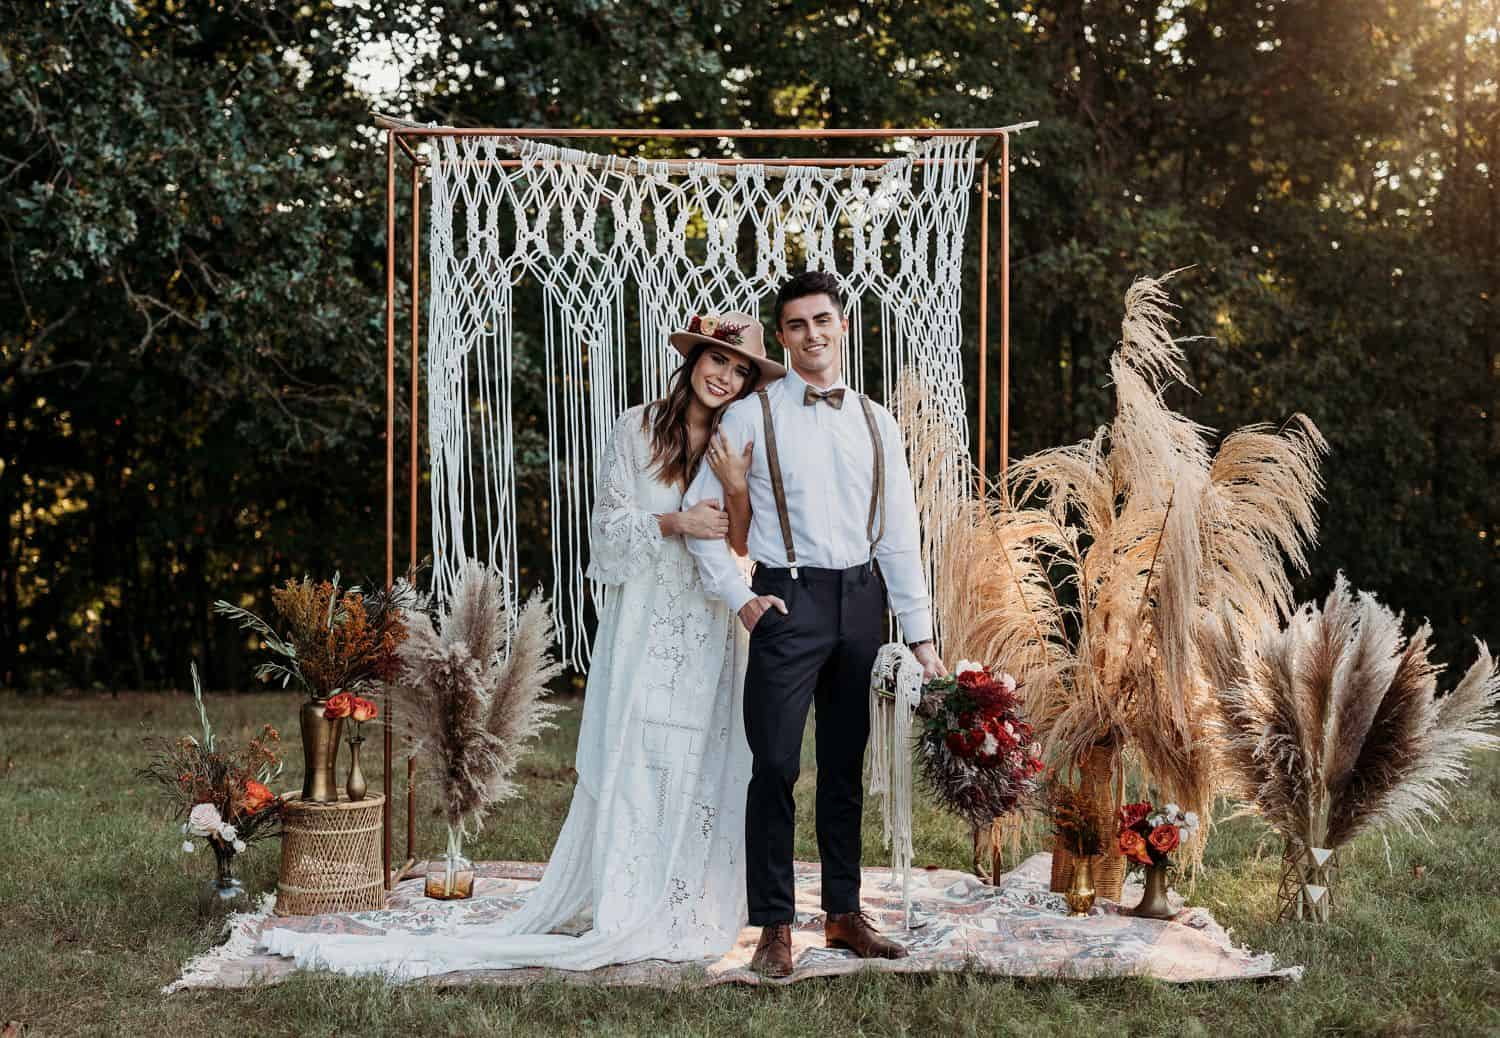 Boho bride and groom pose in front of a macrame backdrop